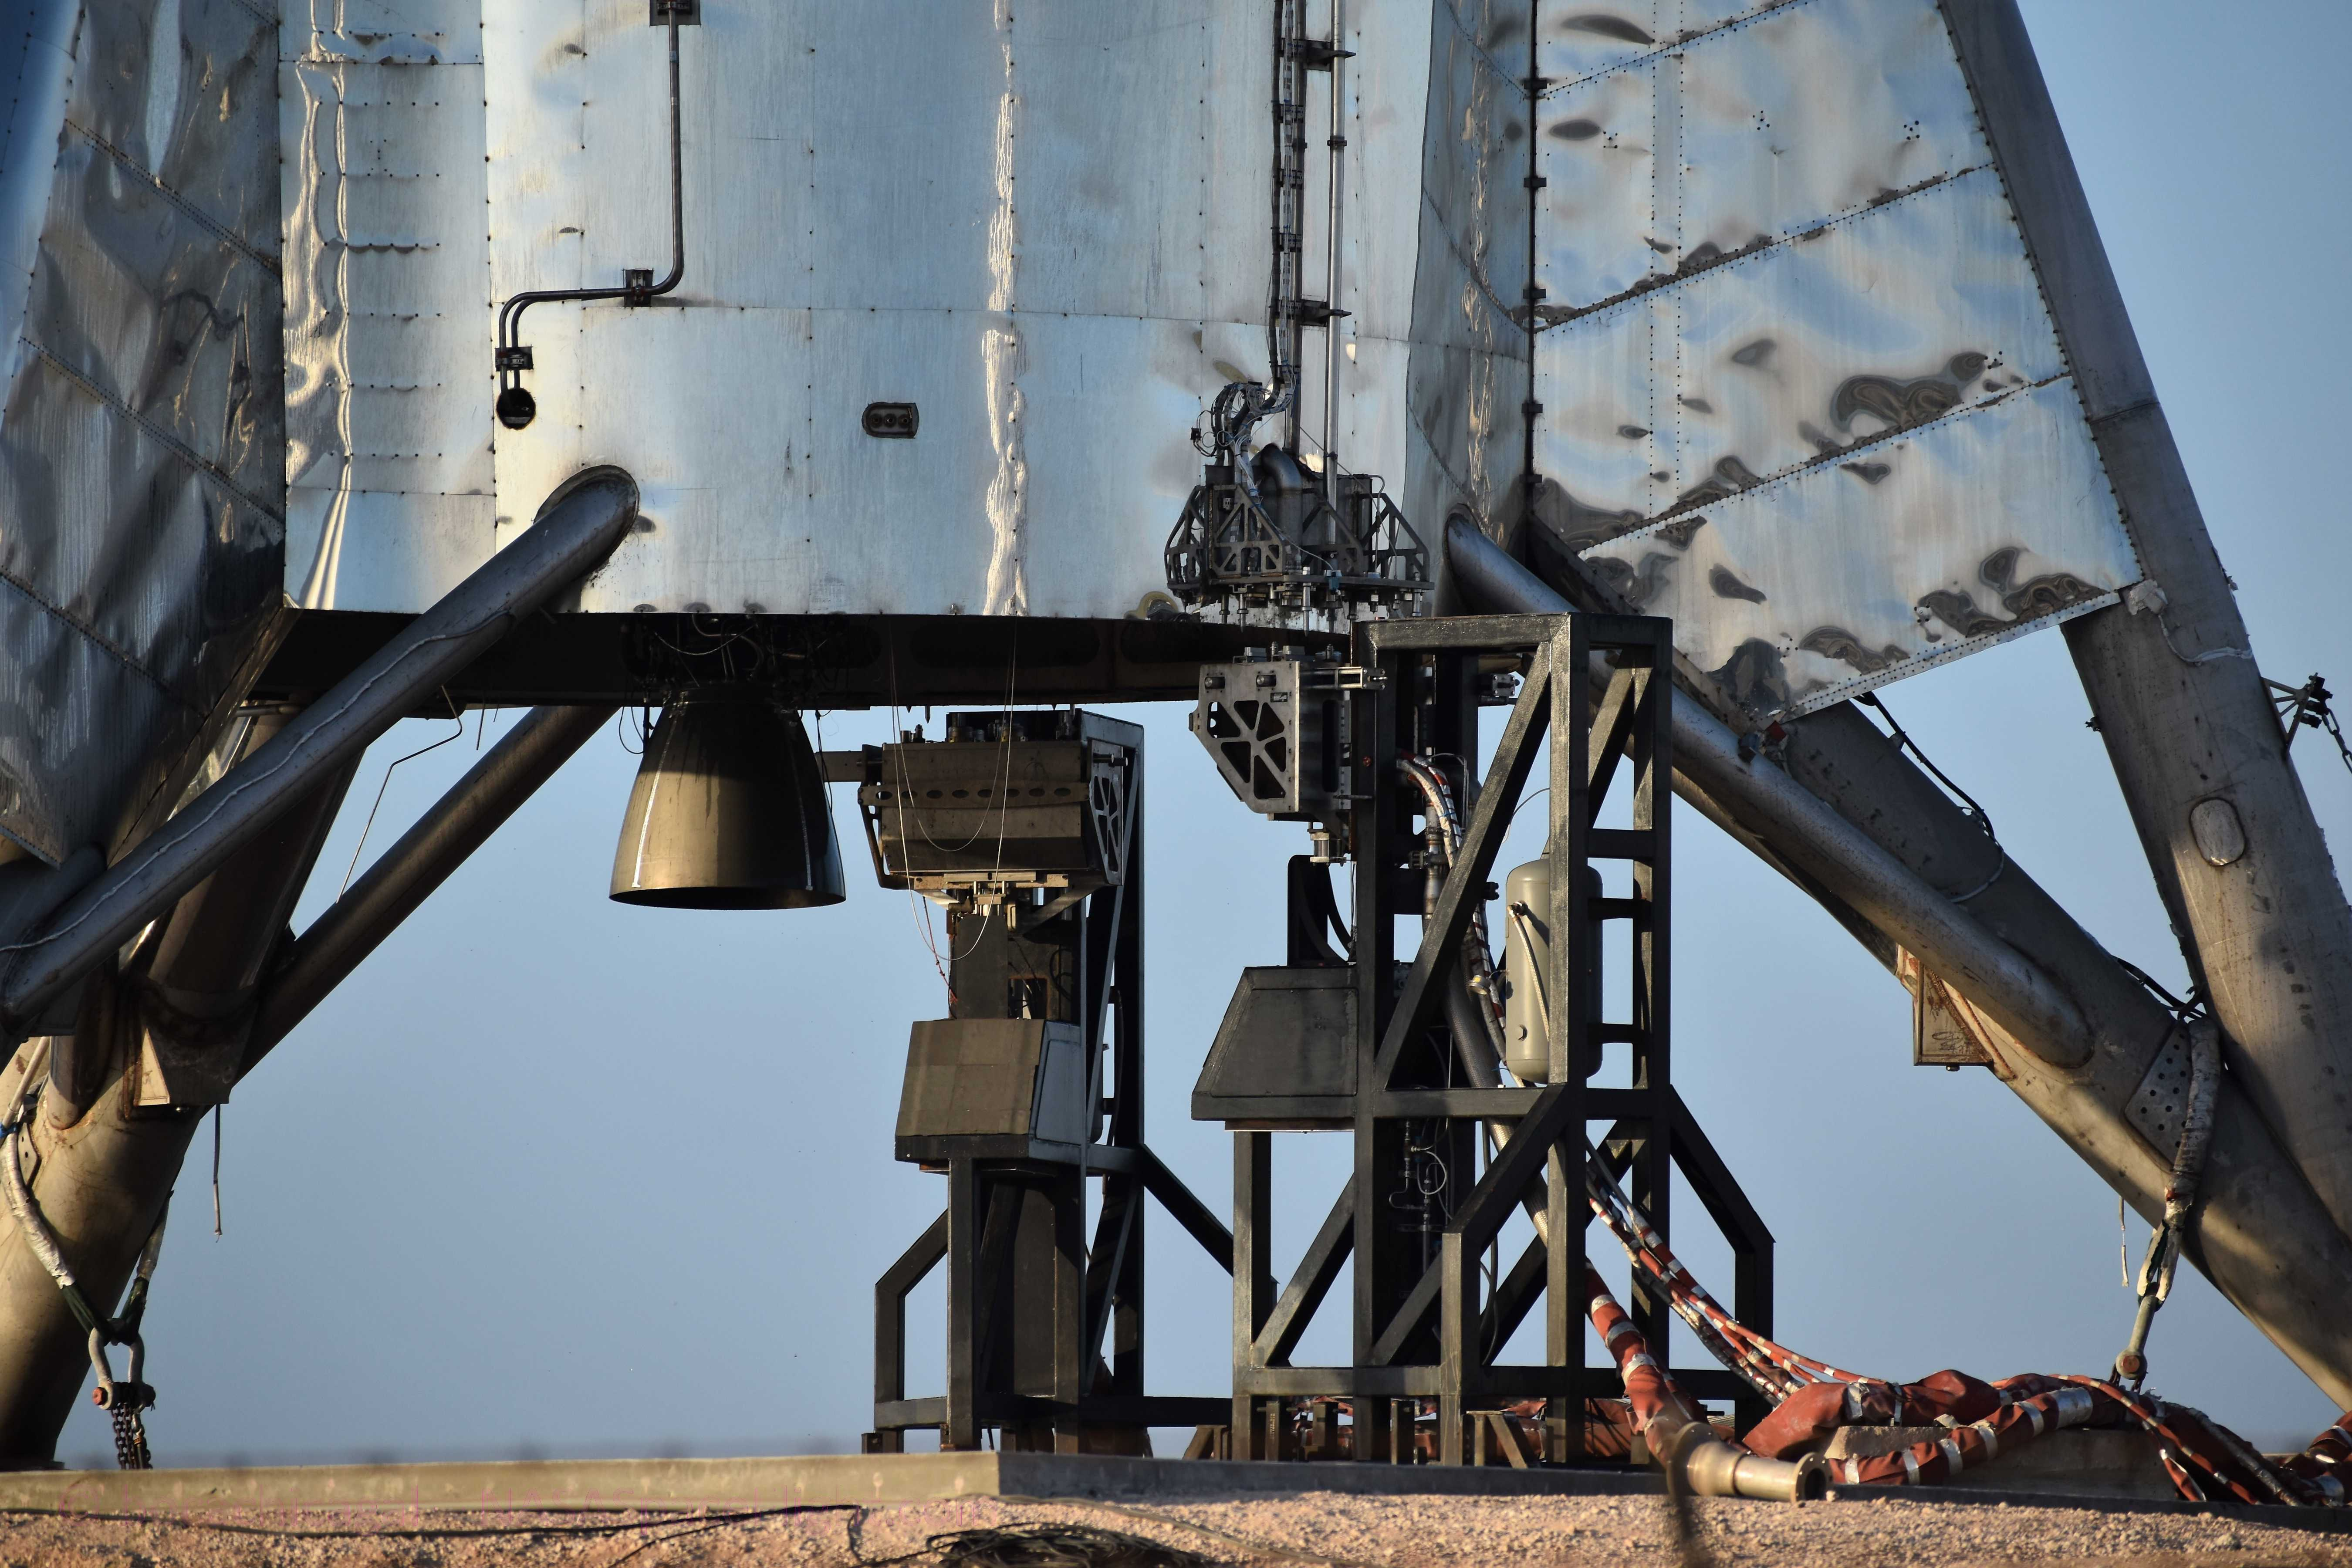 Starhopper Raptor SN06 post static fire anomaly 071719 (NASASpaceflight – bocachicagal) 2 (c)